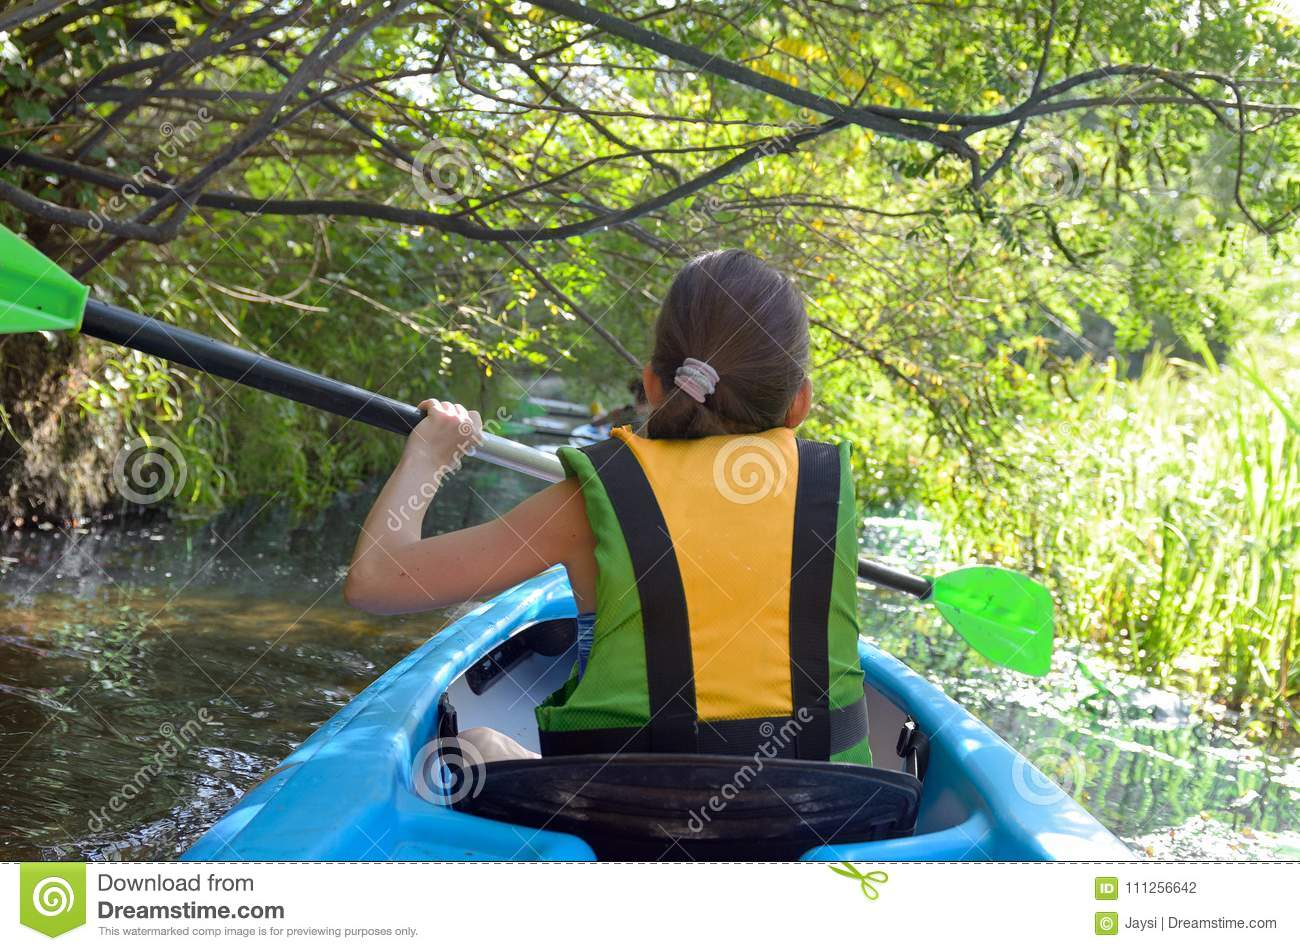 Family kayaking, child paddling in kayak on river canoe tour, kid on active autumn weekend and vacation, sport and fitness